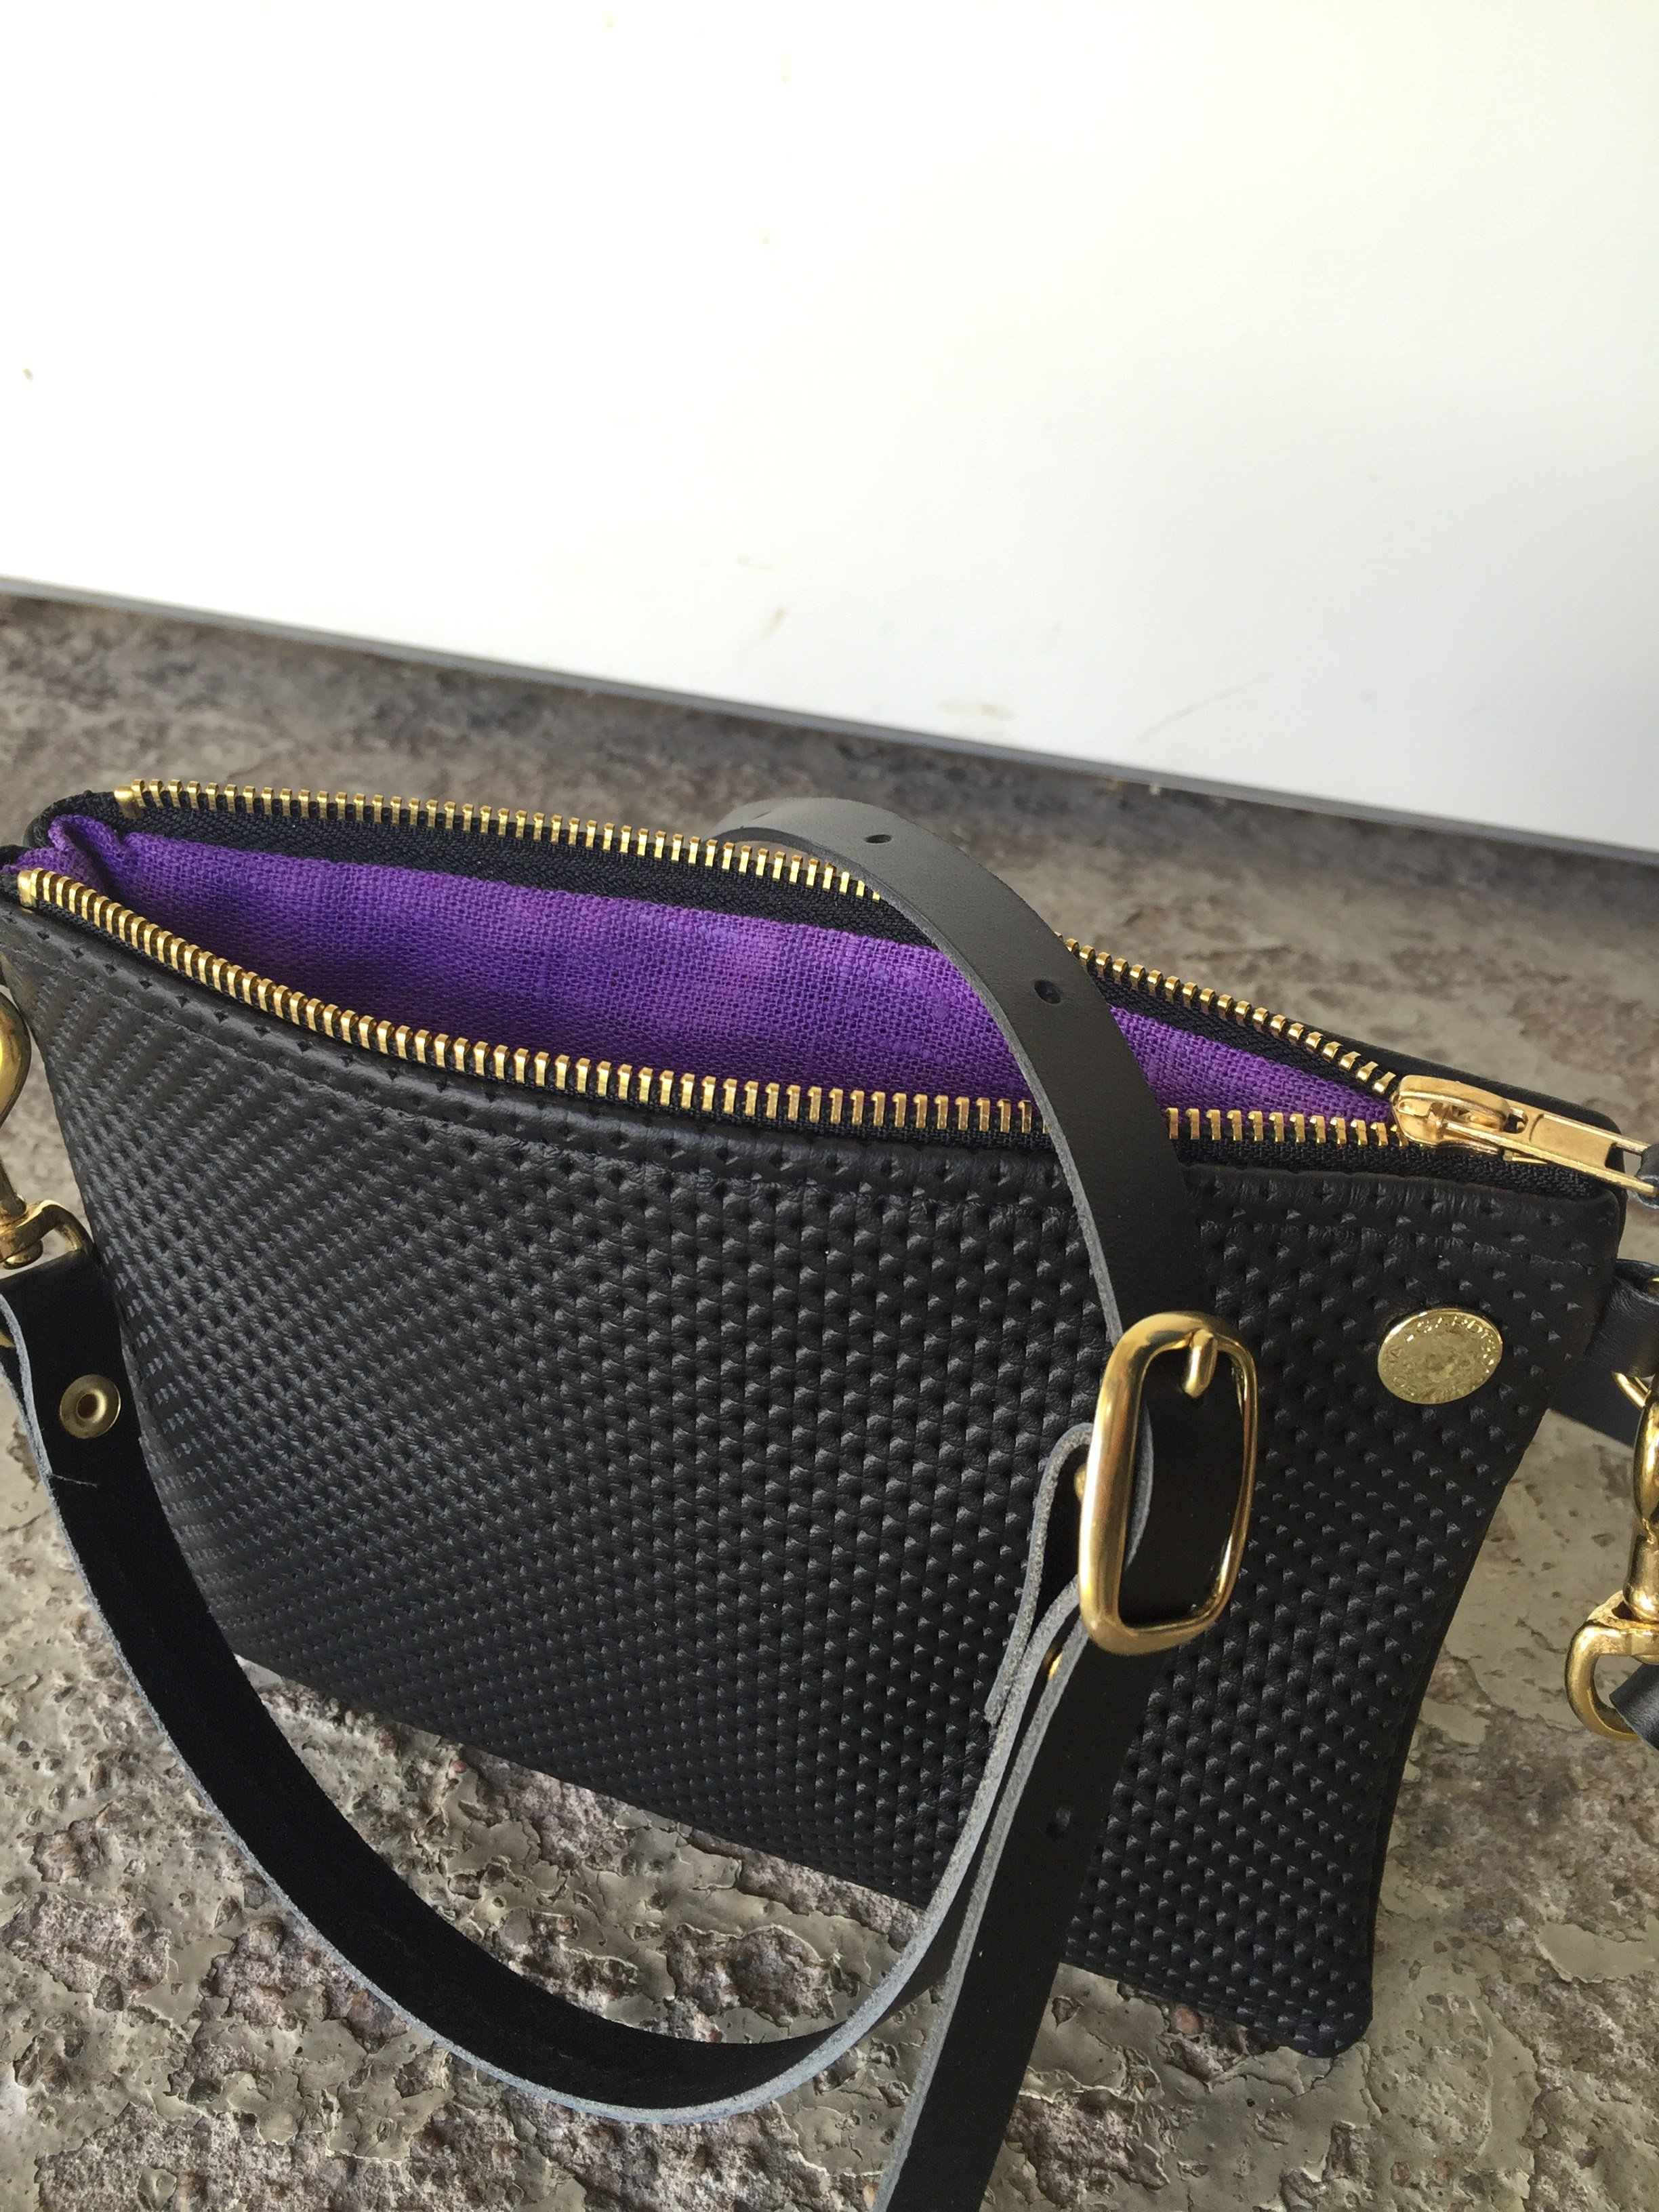 VIP Shoulder Bag - Black Perforated & Black